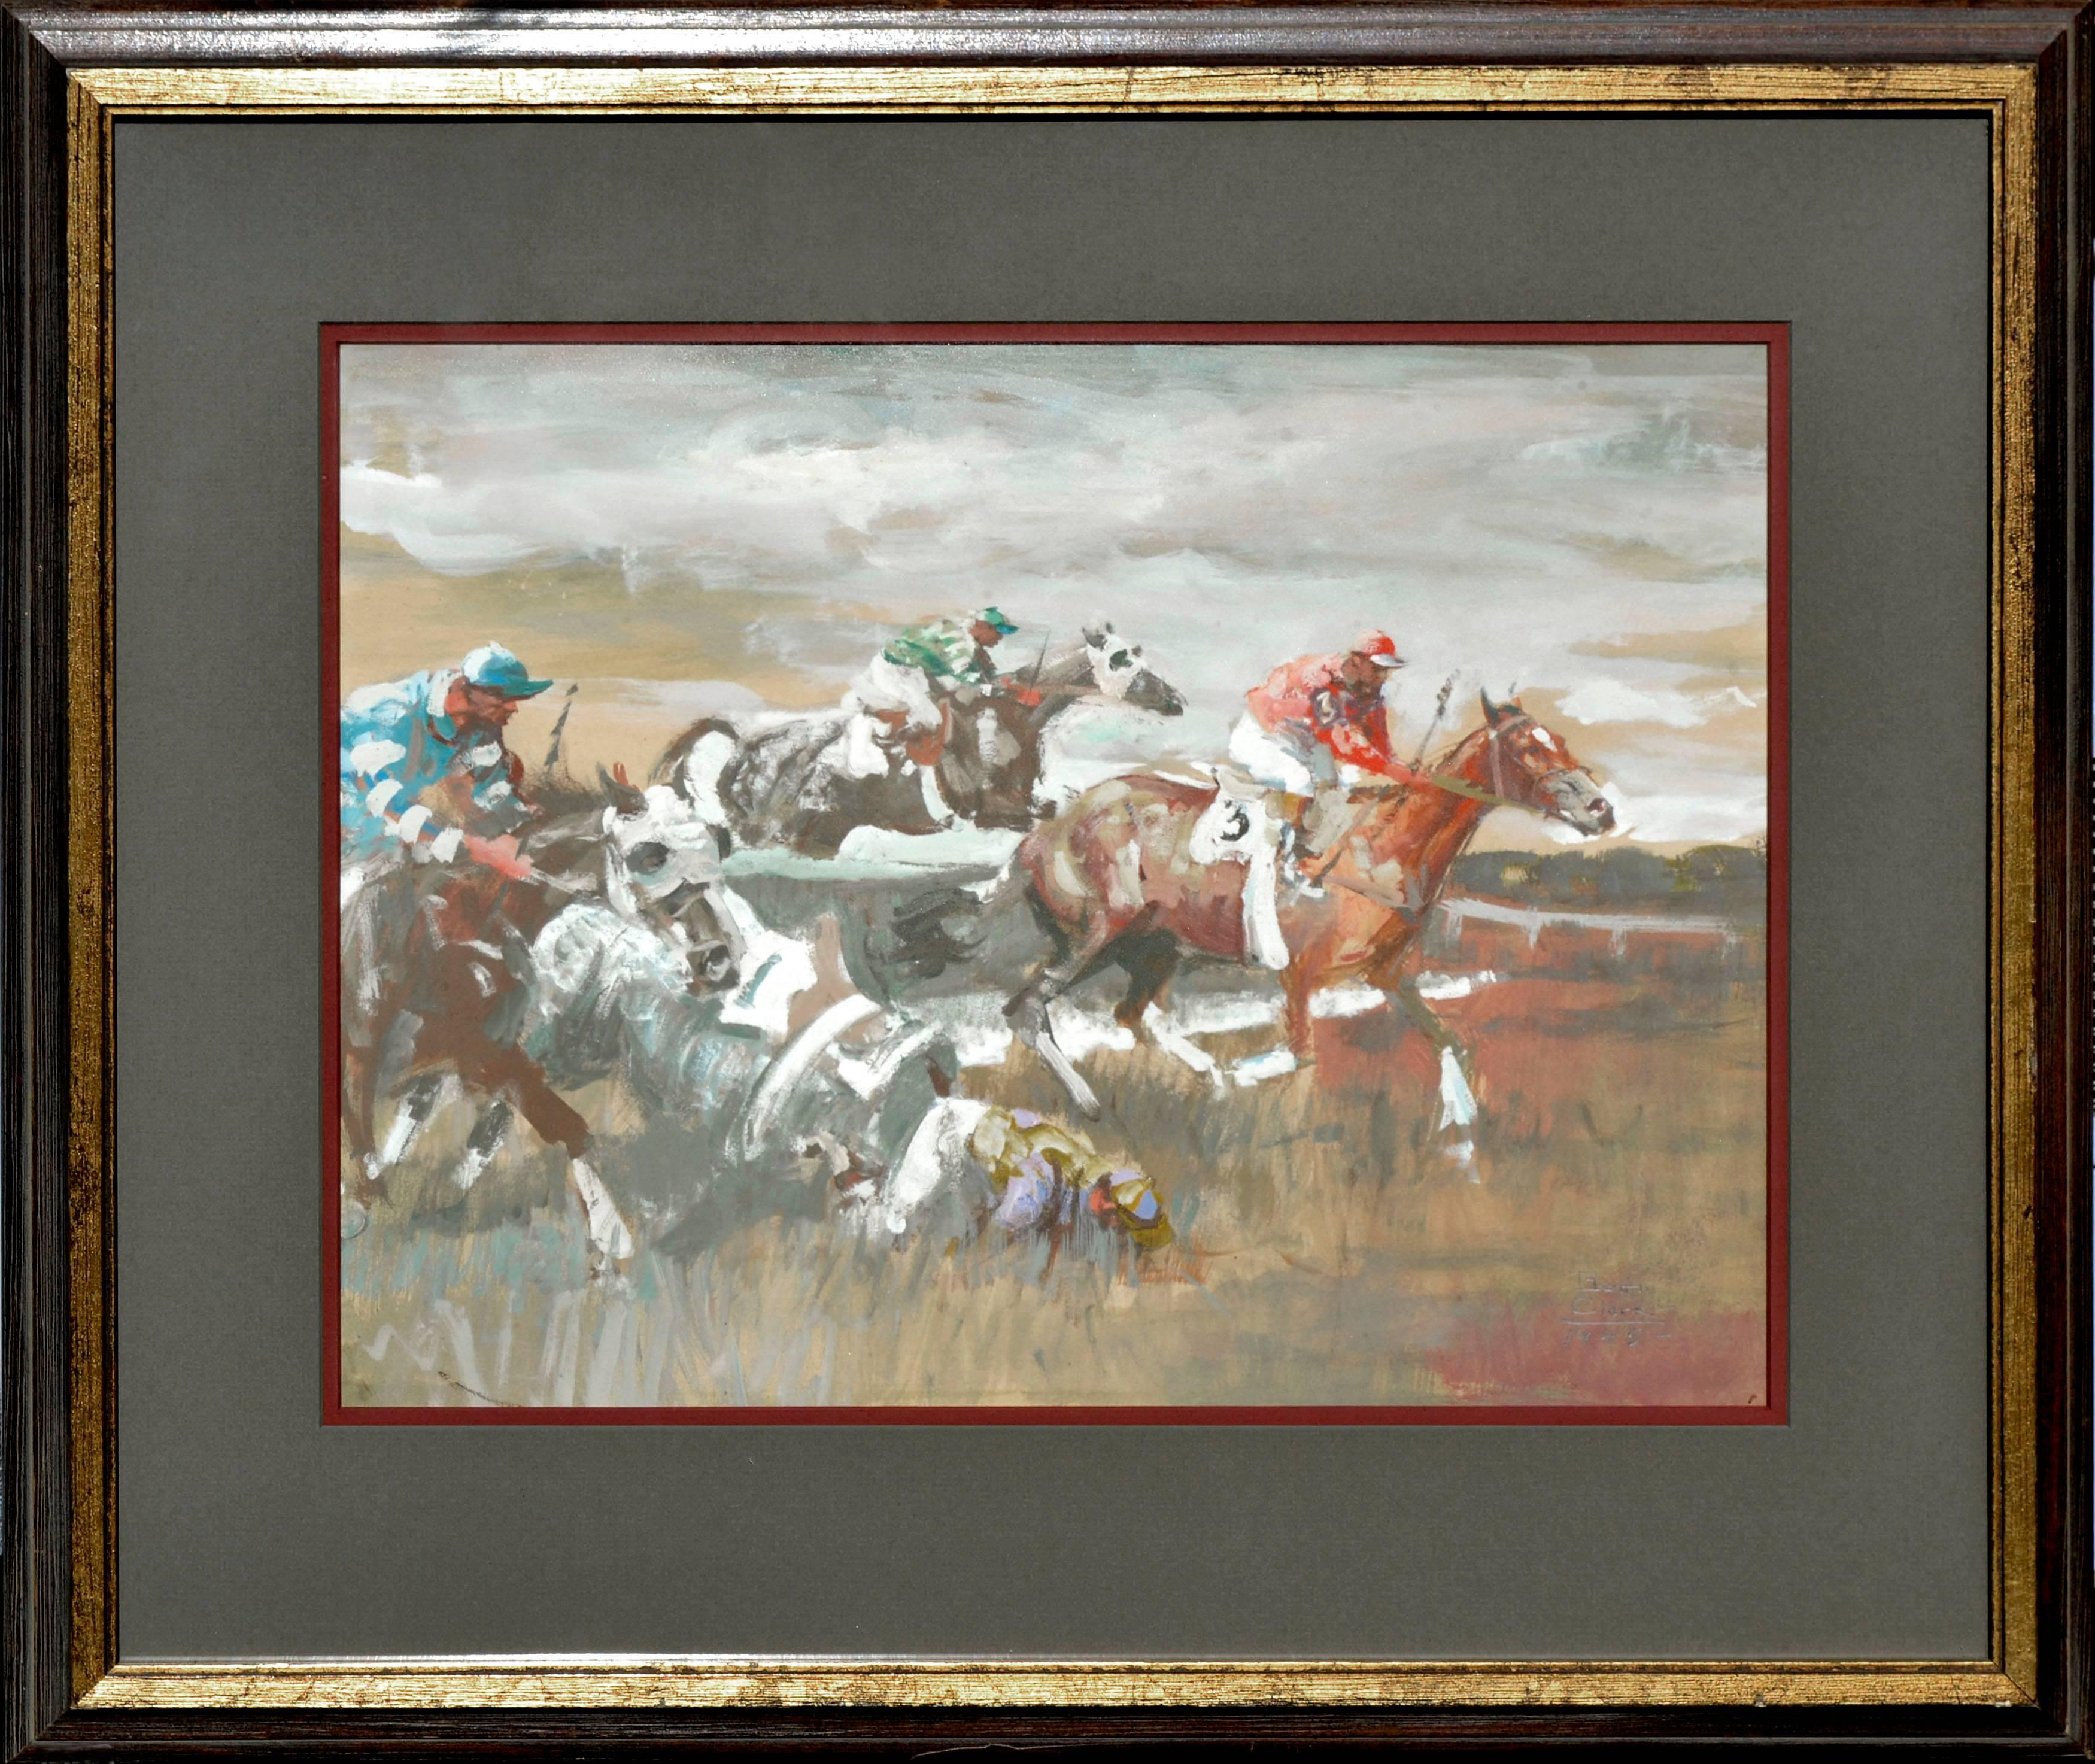 The Steeple Chase figurative